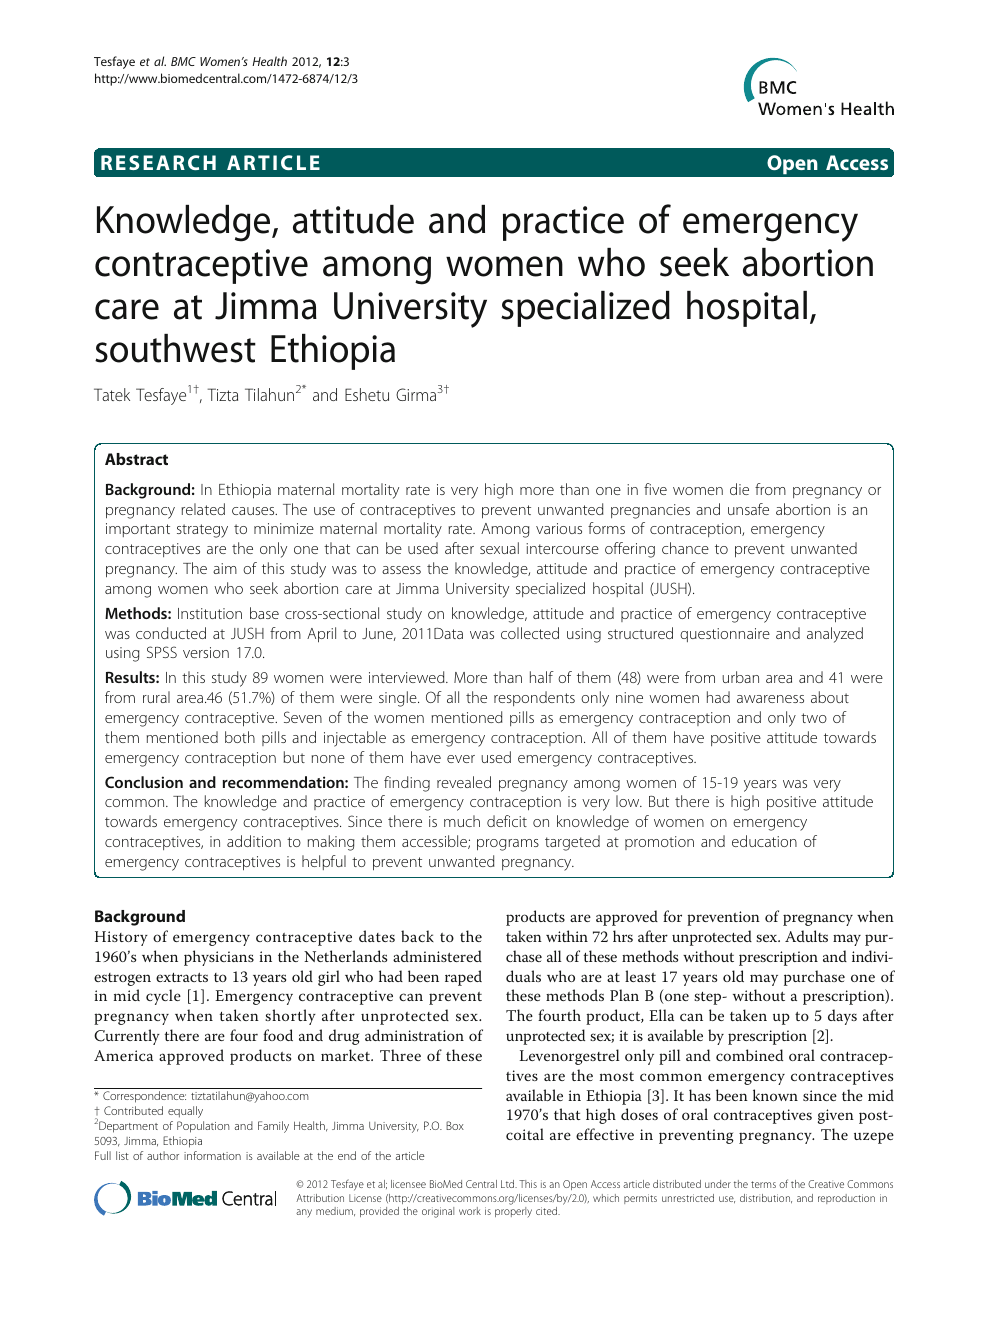 Knowledge, attitude and practice of emergency contraceptive among